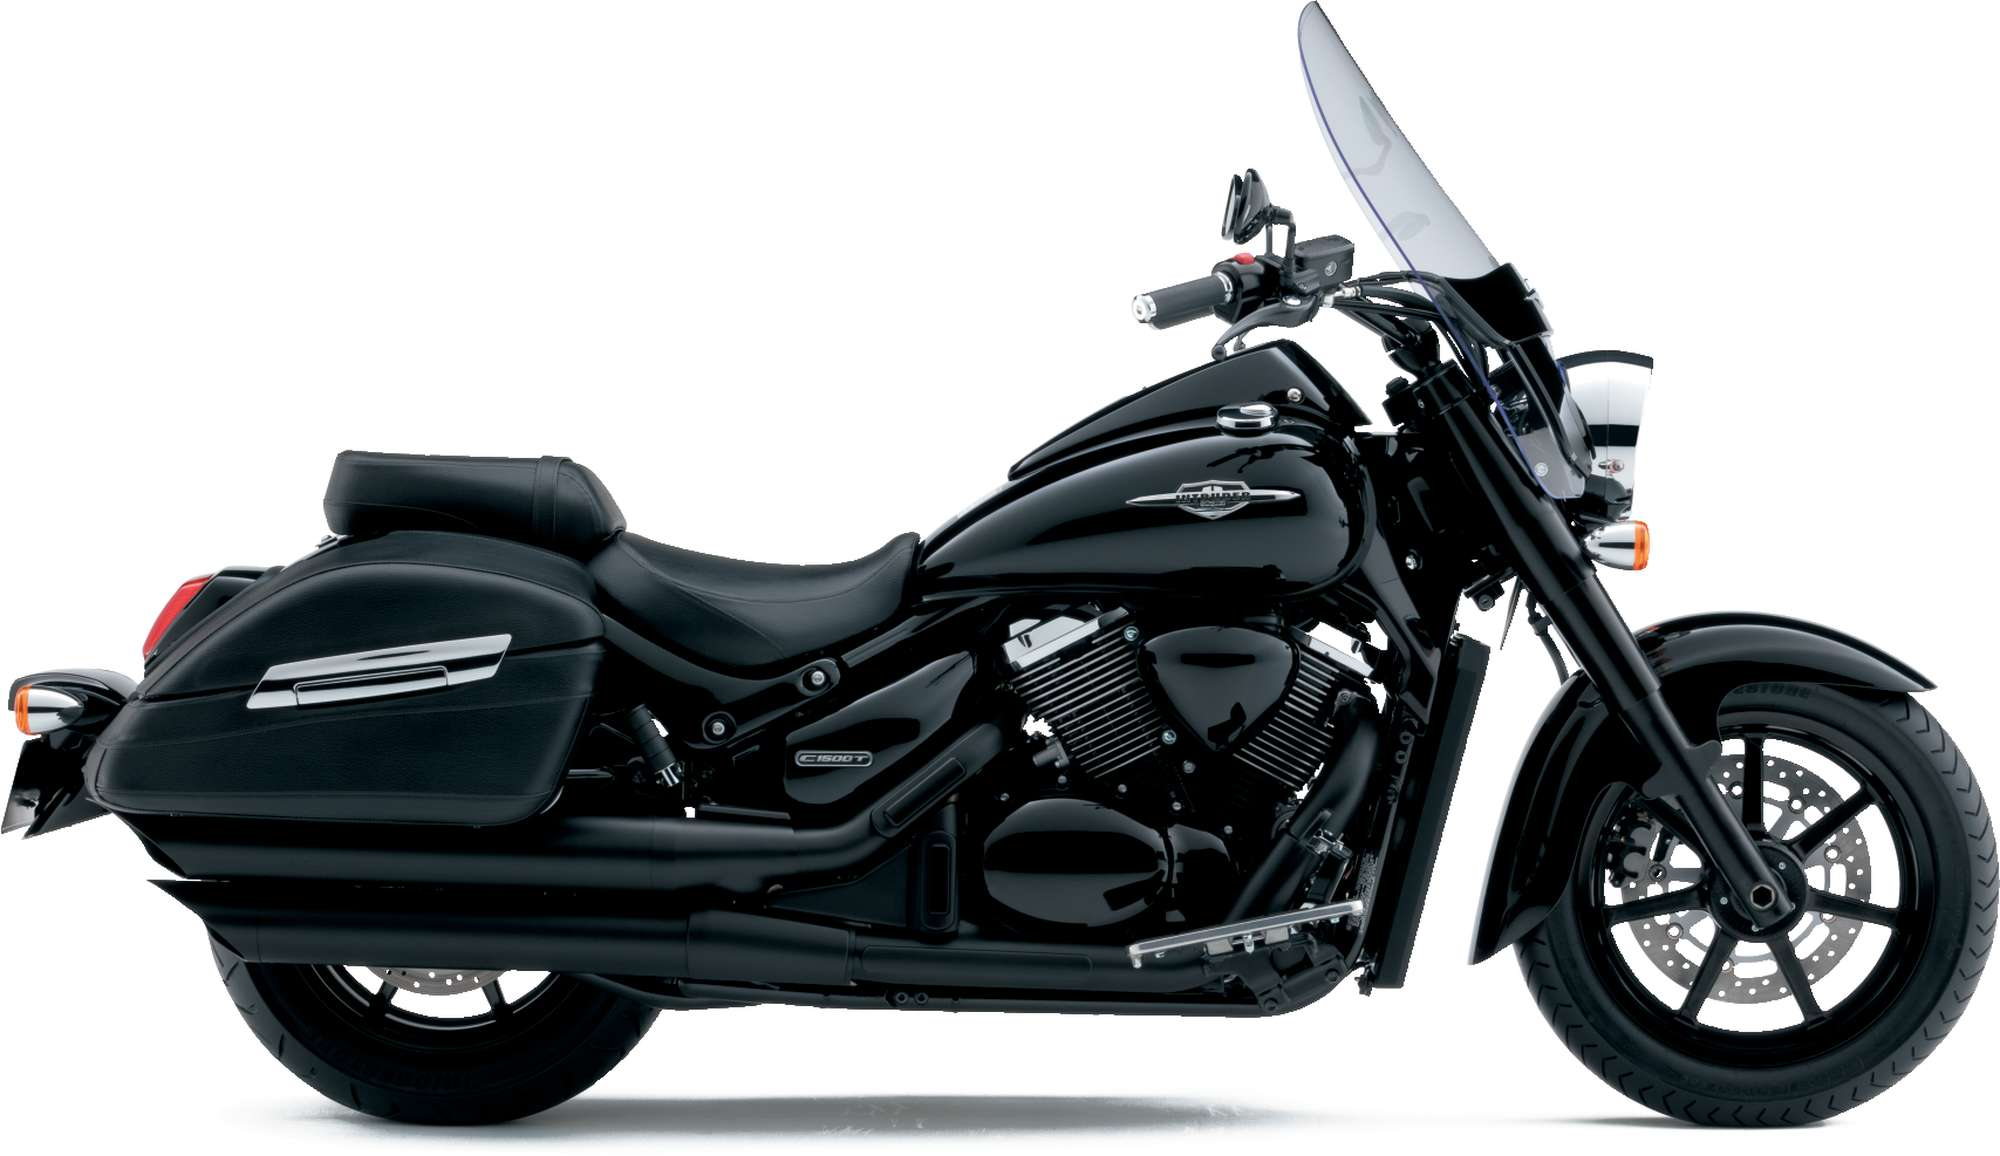 2013 suzuki intruder c1500t vs 2013 moto guzzi california 1400 bike war. Black Bedroom Furniture Sets. Home Design Ideas